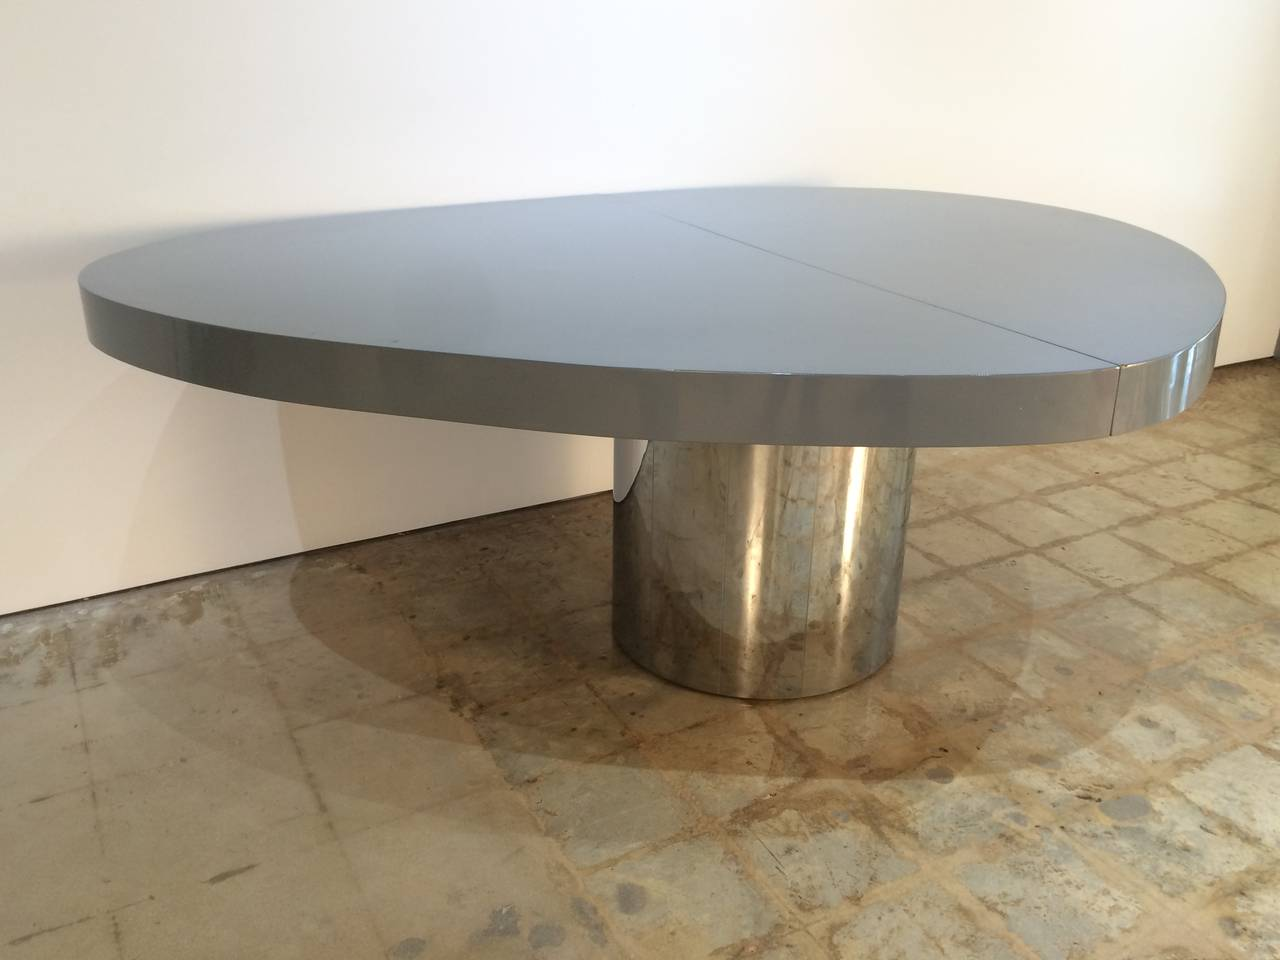 Free-form grey lacquer and polished stainless steel extendable dining or center table by Paul Evans Studio.